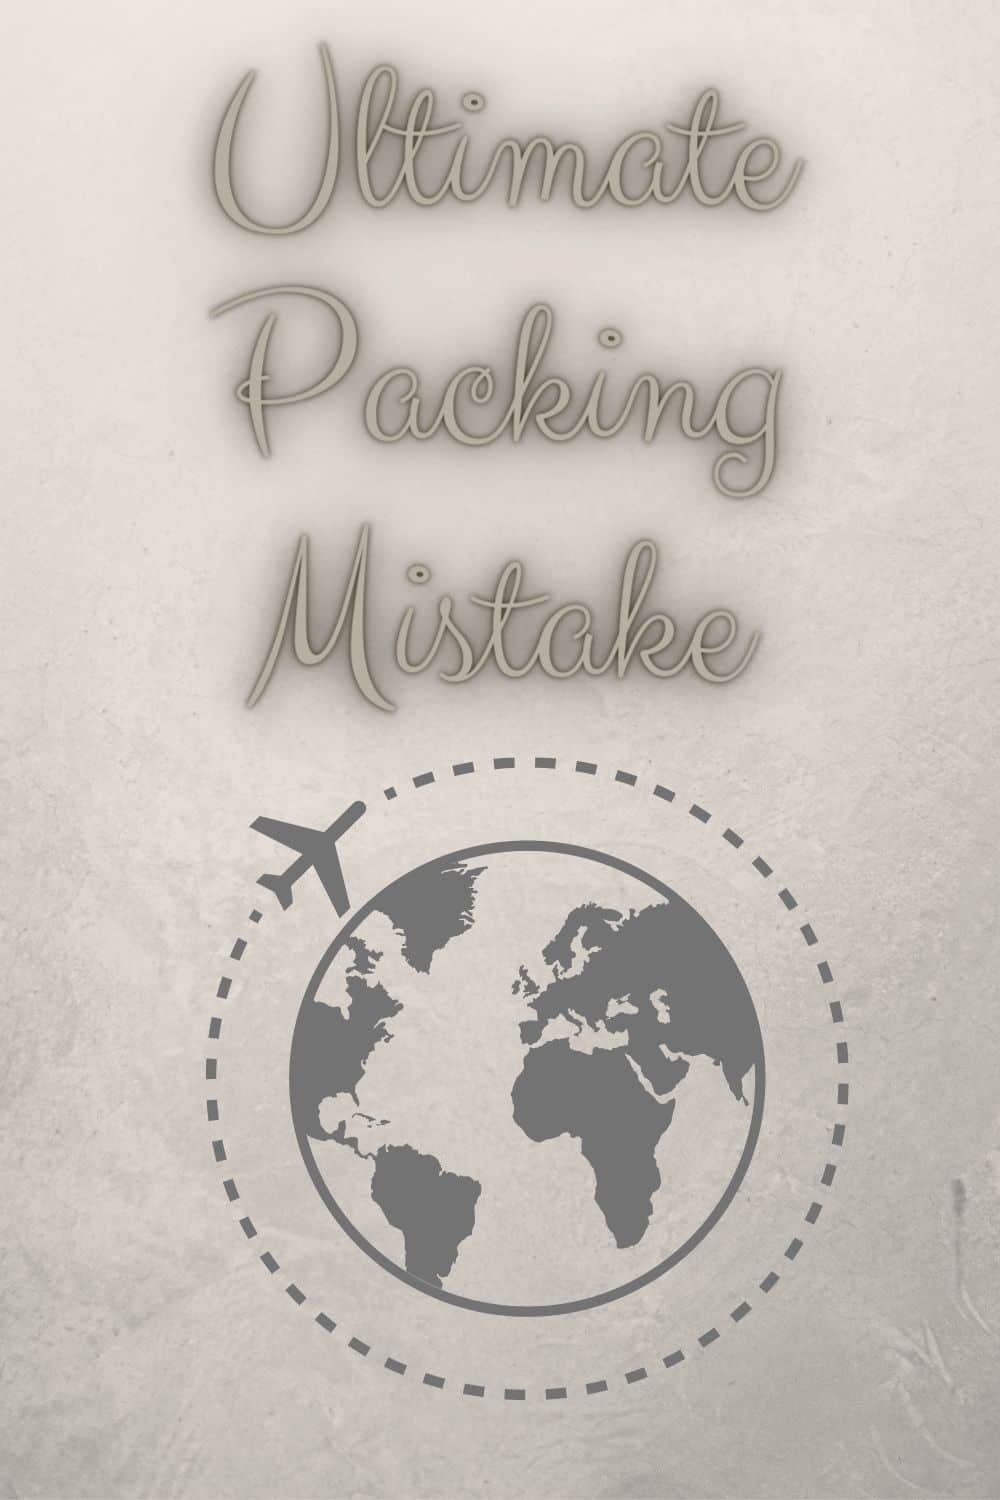 Ultimate Packing Mistake world map